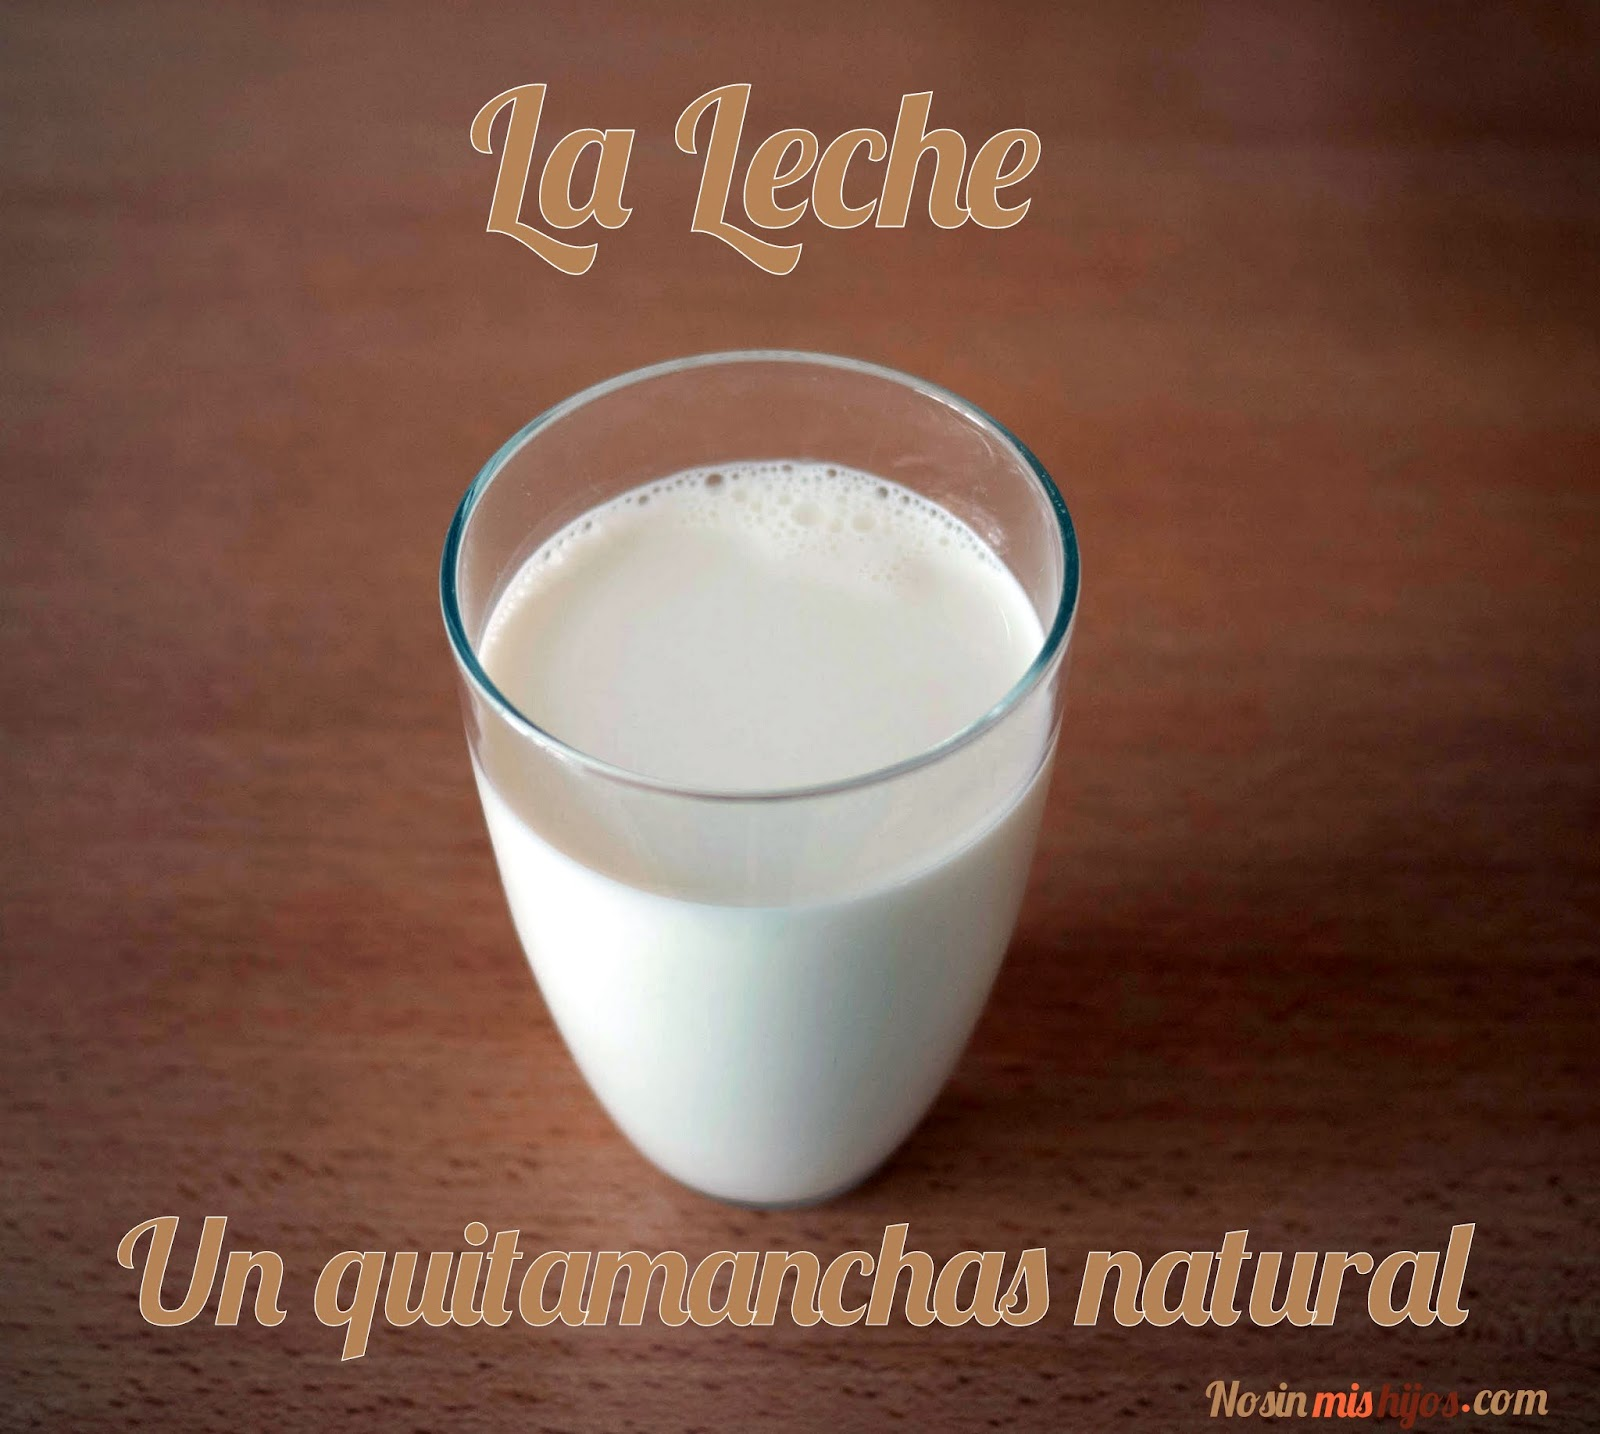 La leche un quitamanchas natural